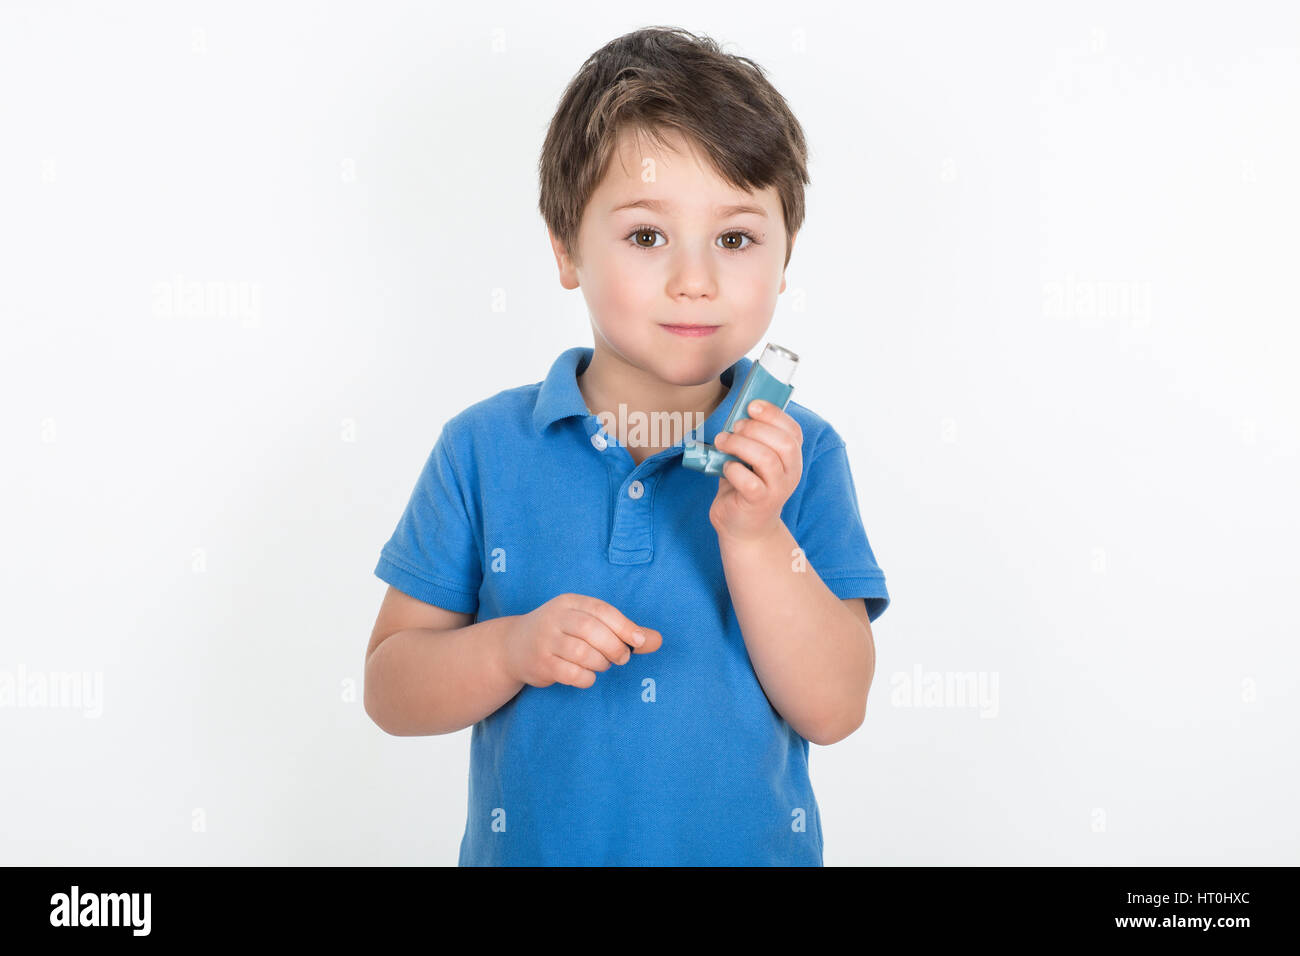 Little boy with asthma holding a metered-dose Inhaler 'Puffer'	. Isolated on a white background. - Stock Image